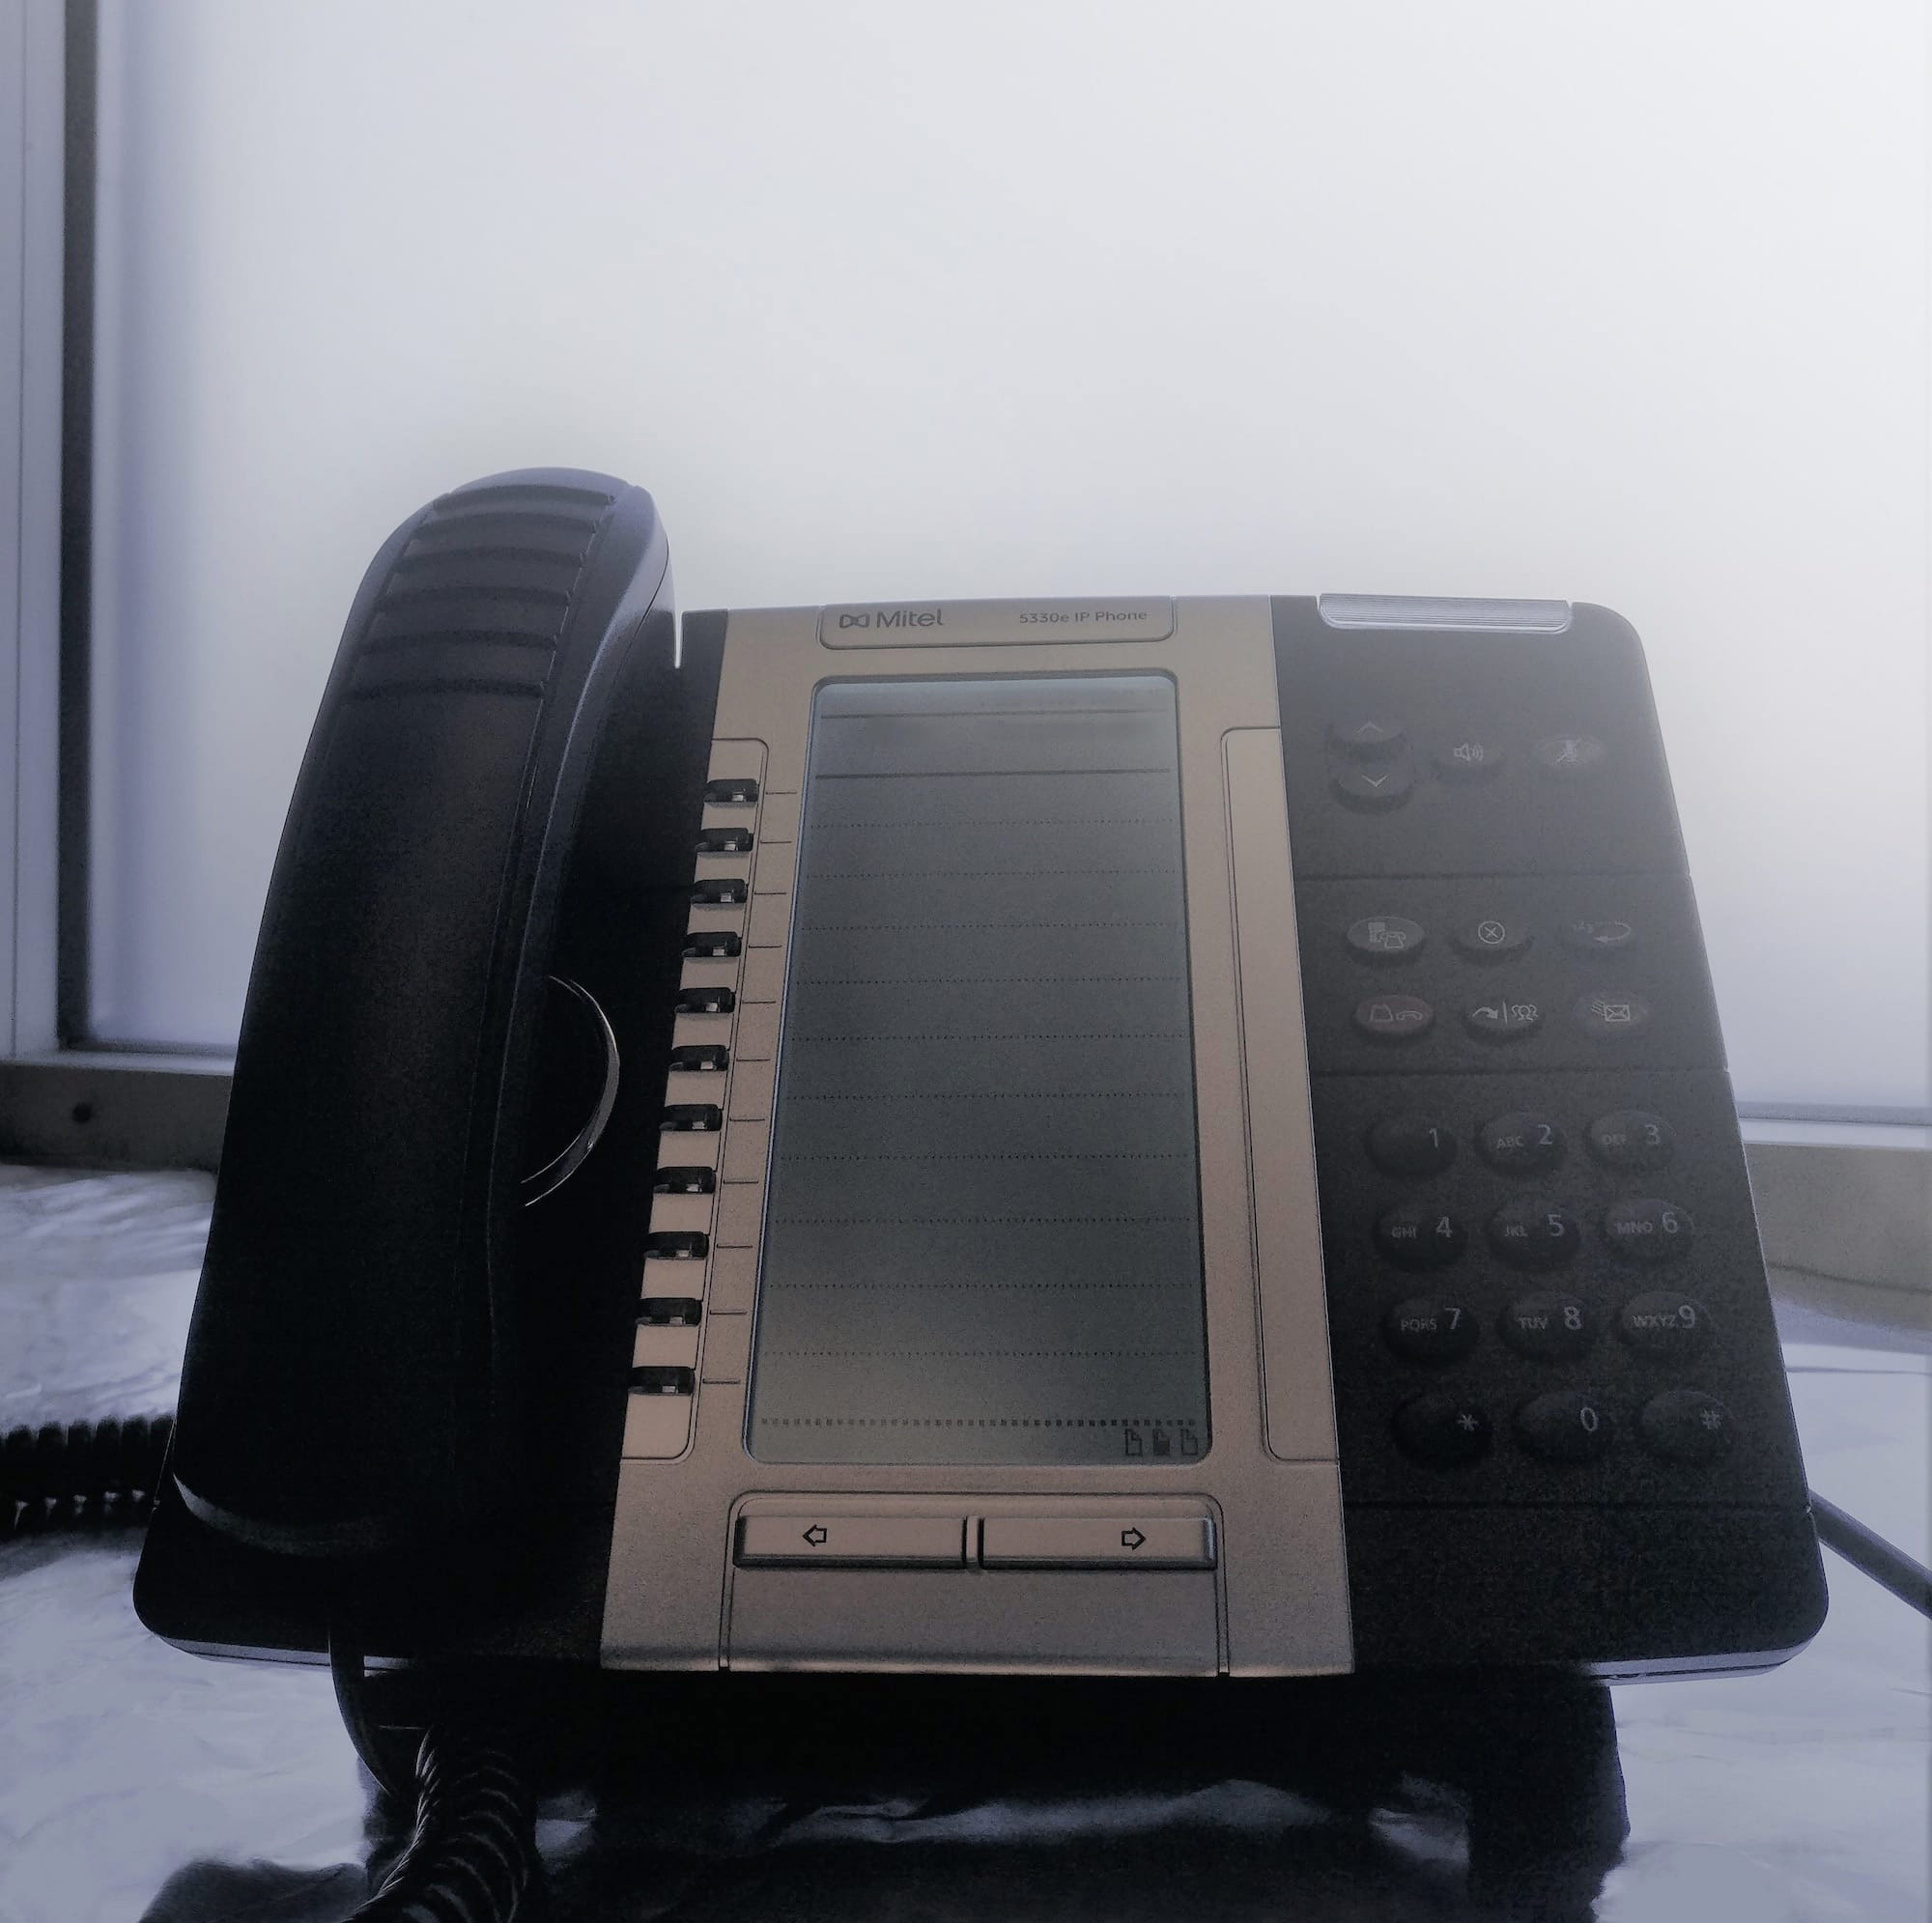 Is it time to upgrade your phone system? - Featured Image